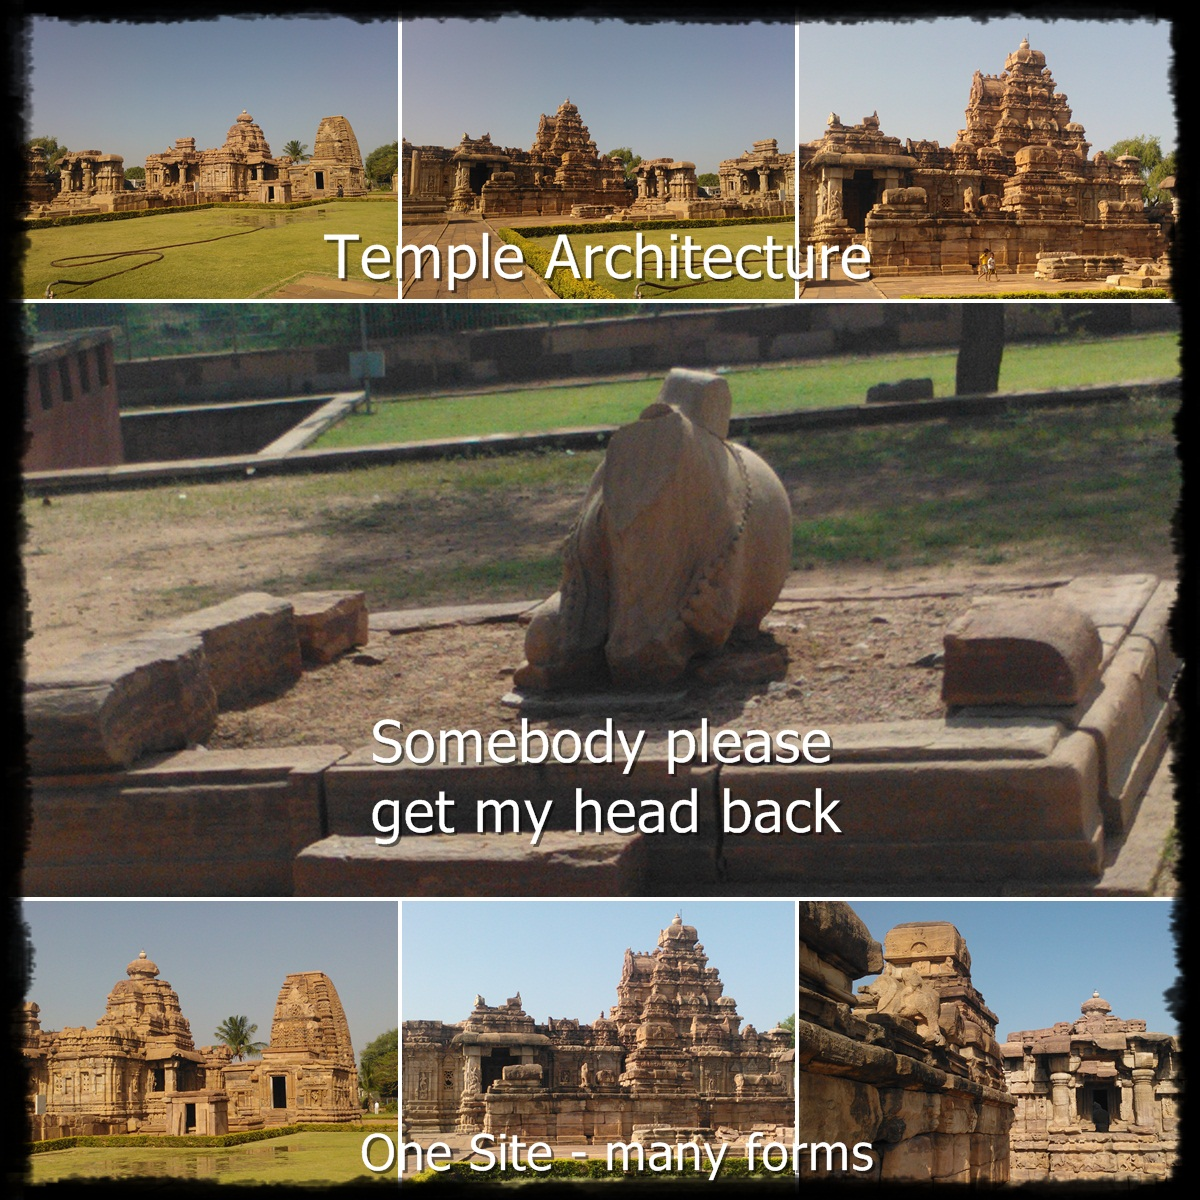 Architecture at Pattadkal